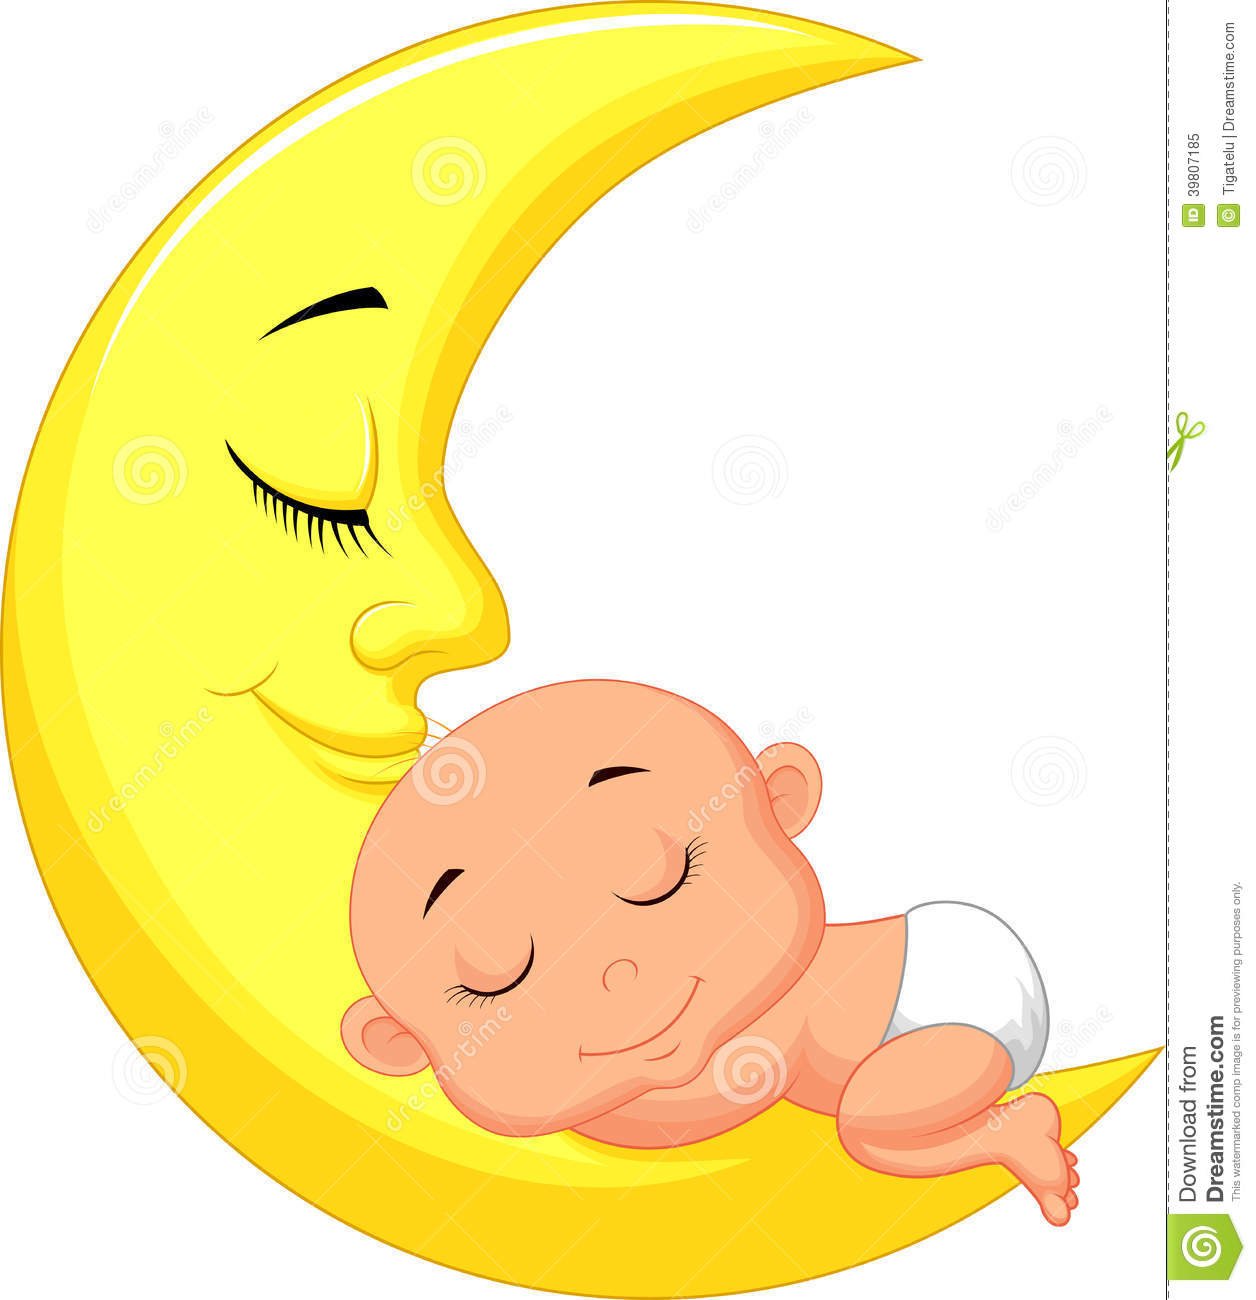 Cute Baby Cartoon Sleeping On The Moon Stock Vector   Image  39807185